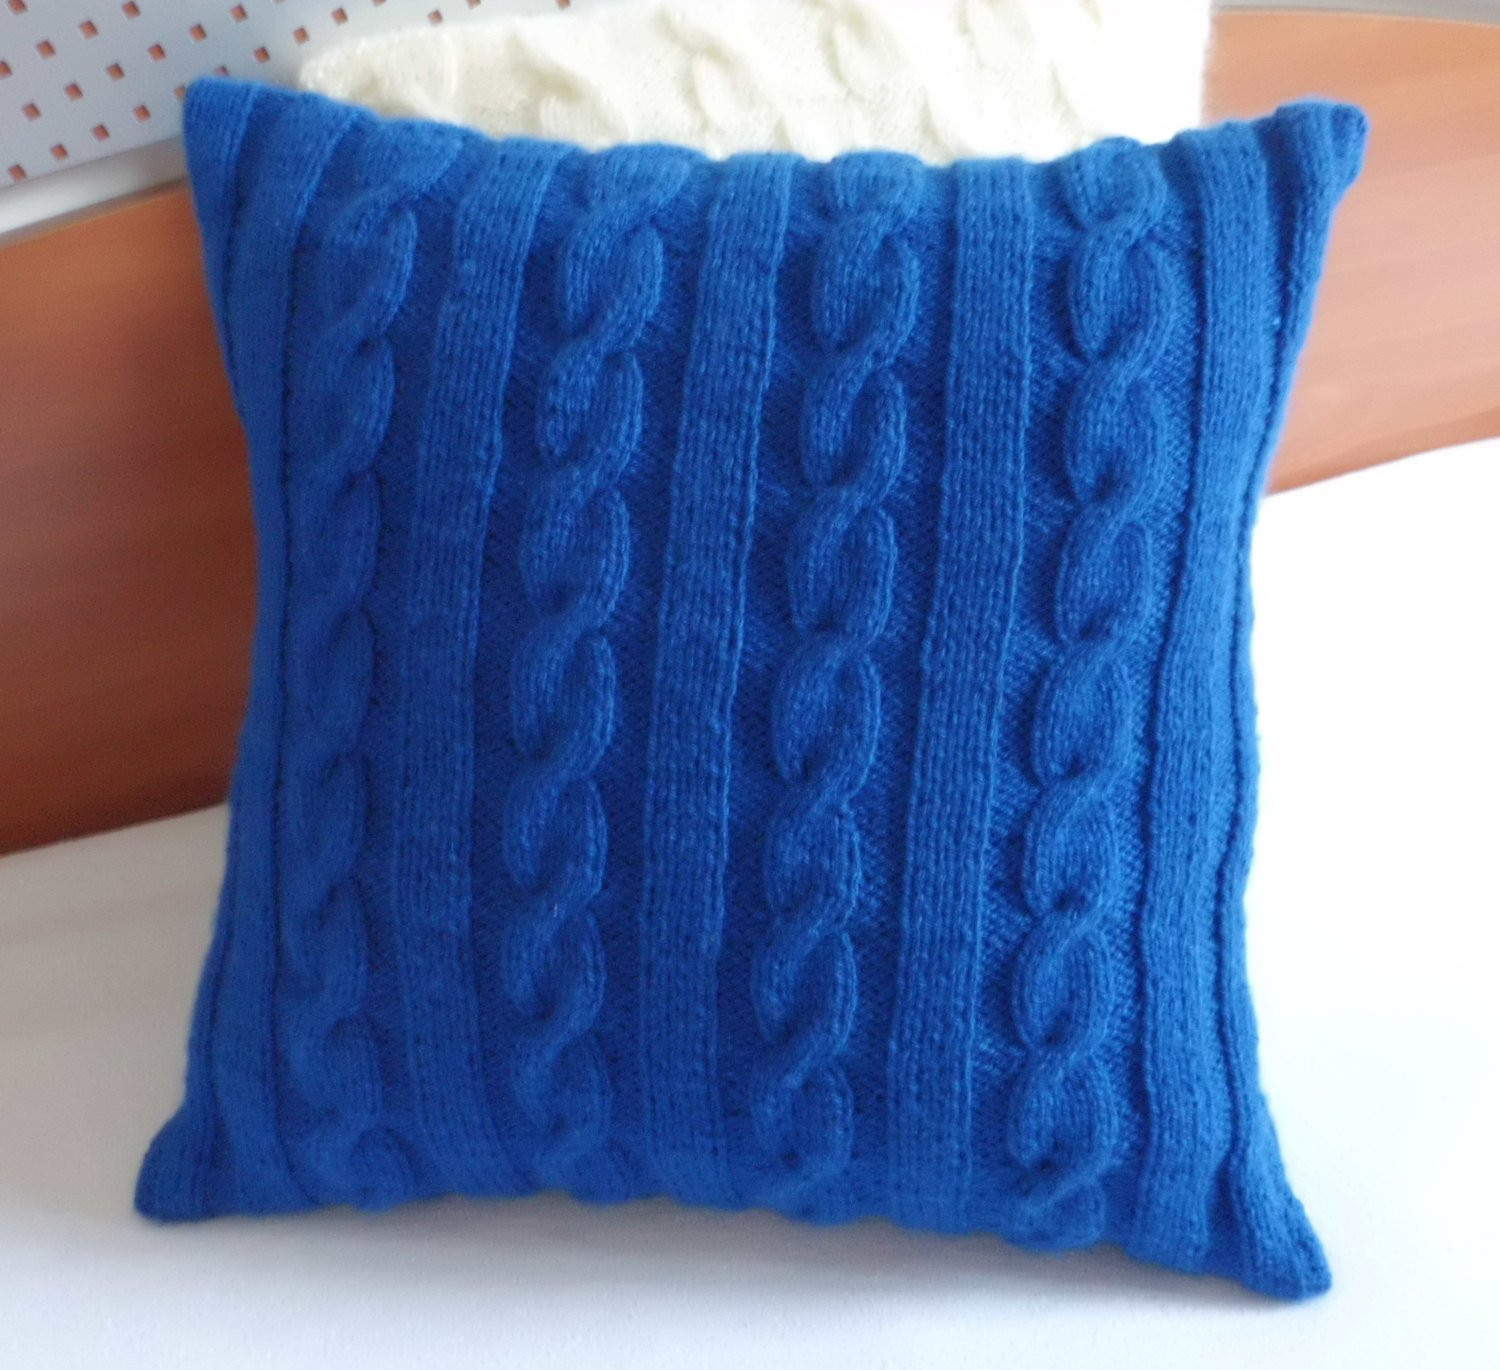 Knit Pillow Fresh Cable Knit Royal Blue Knitted Pillow Cover Throw Pillow Hand Of Charming 46 Pics Knit Pillow